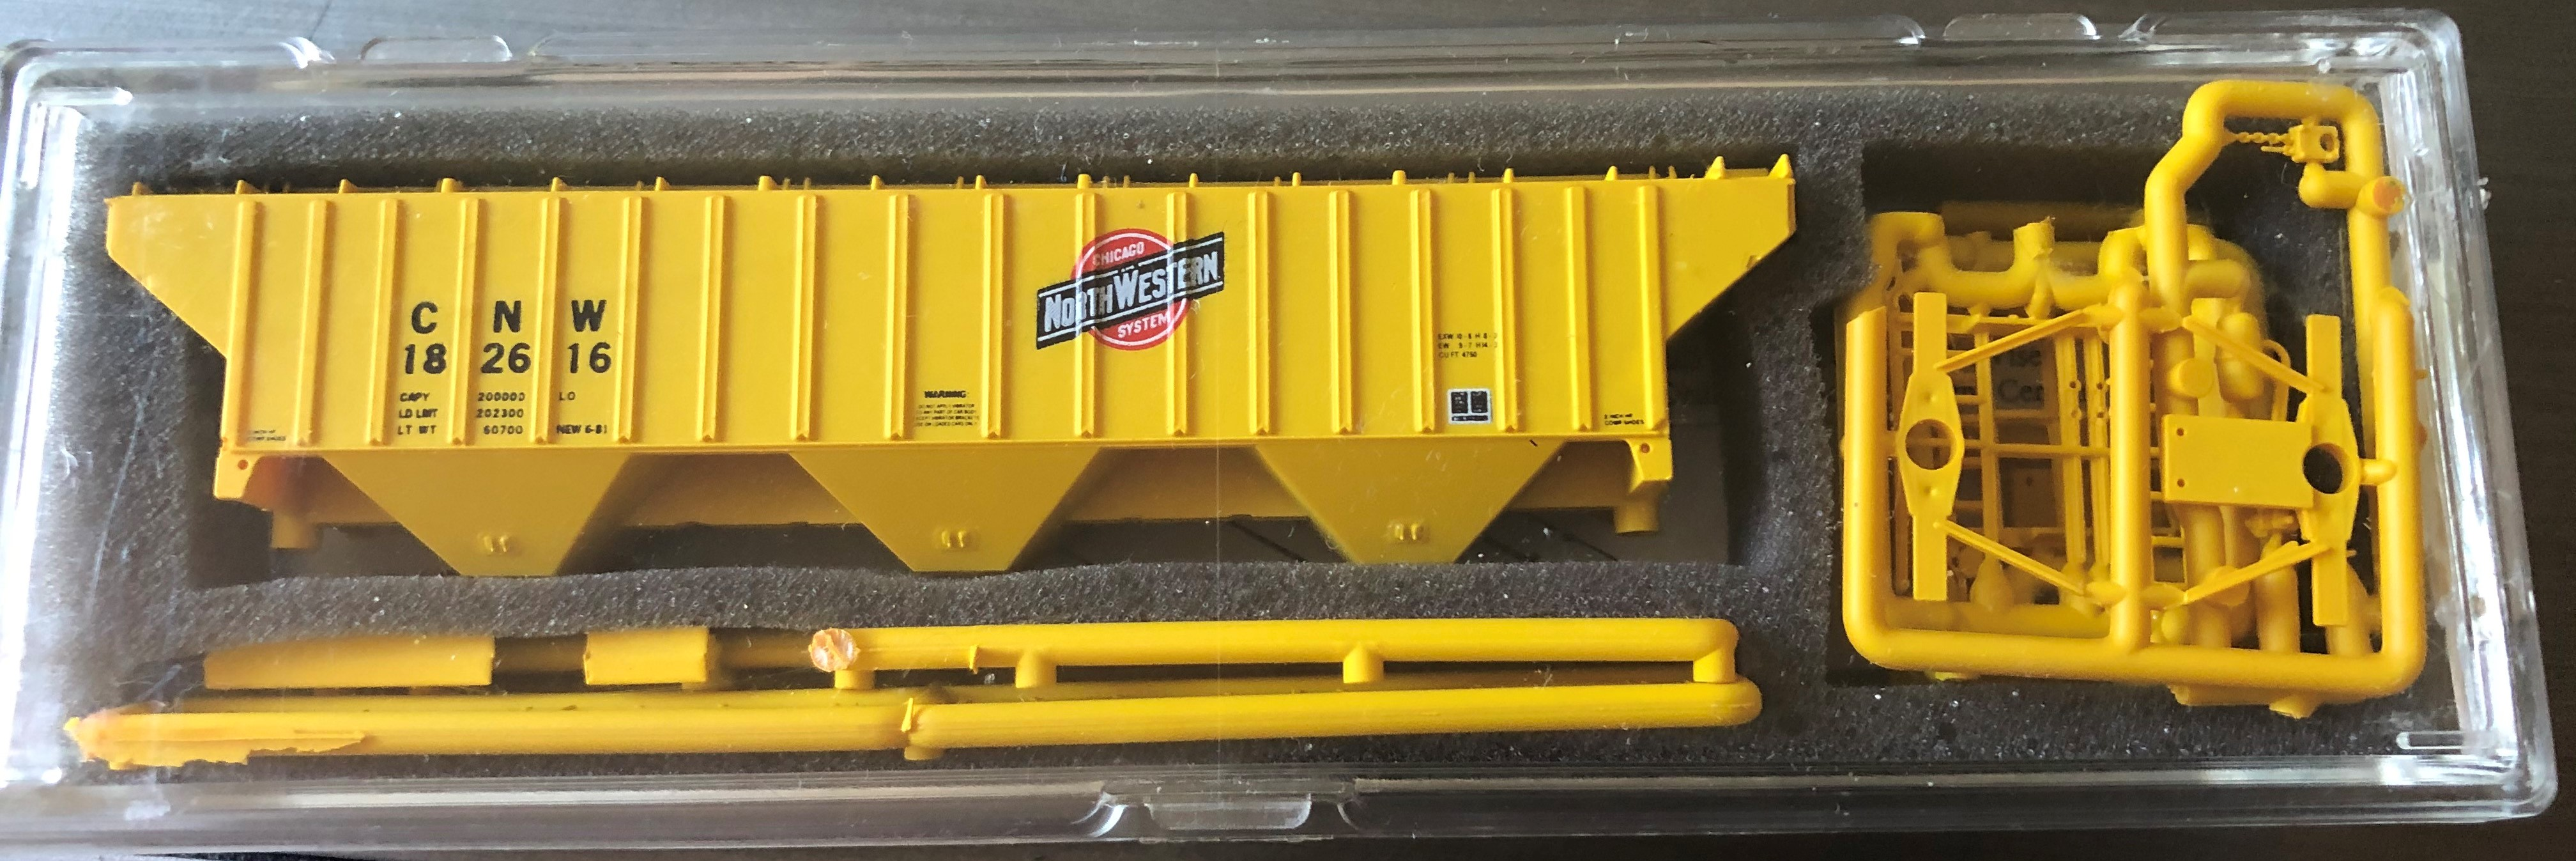 N Scale - InterMountain - 60320-01 - Covered Hopper, 3-Bay, Thrall 4750 - Chicago & North Western - 182616